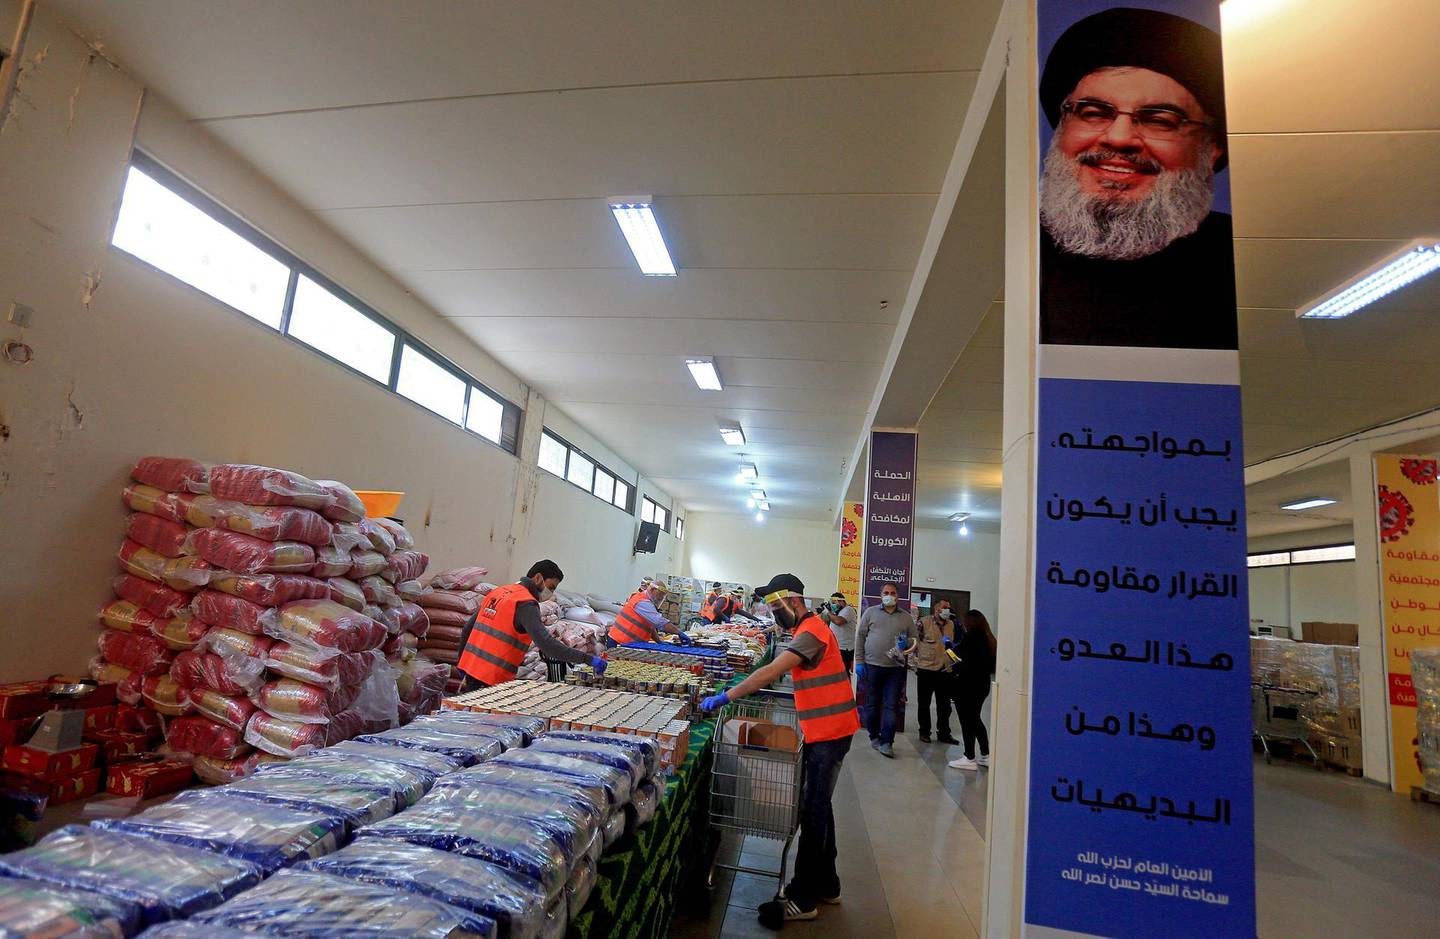 A picture taken during a guided tour organised by the Lebanese Shiite movement Hezbollah shows volunteers sorting food aid that will be distributed to improvised people during the COVID-19 coronavirus pandemic, at a centre in Beirut's southern suburbs on March 31, 2020. / AFP / -